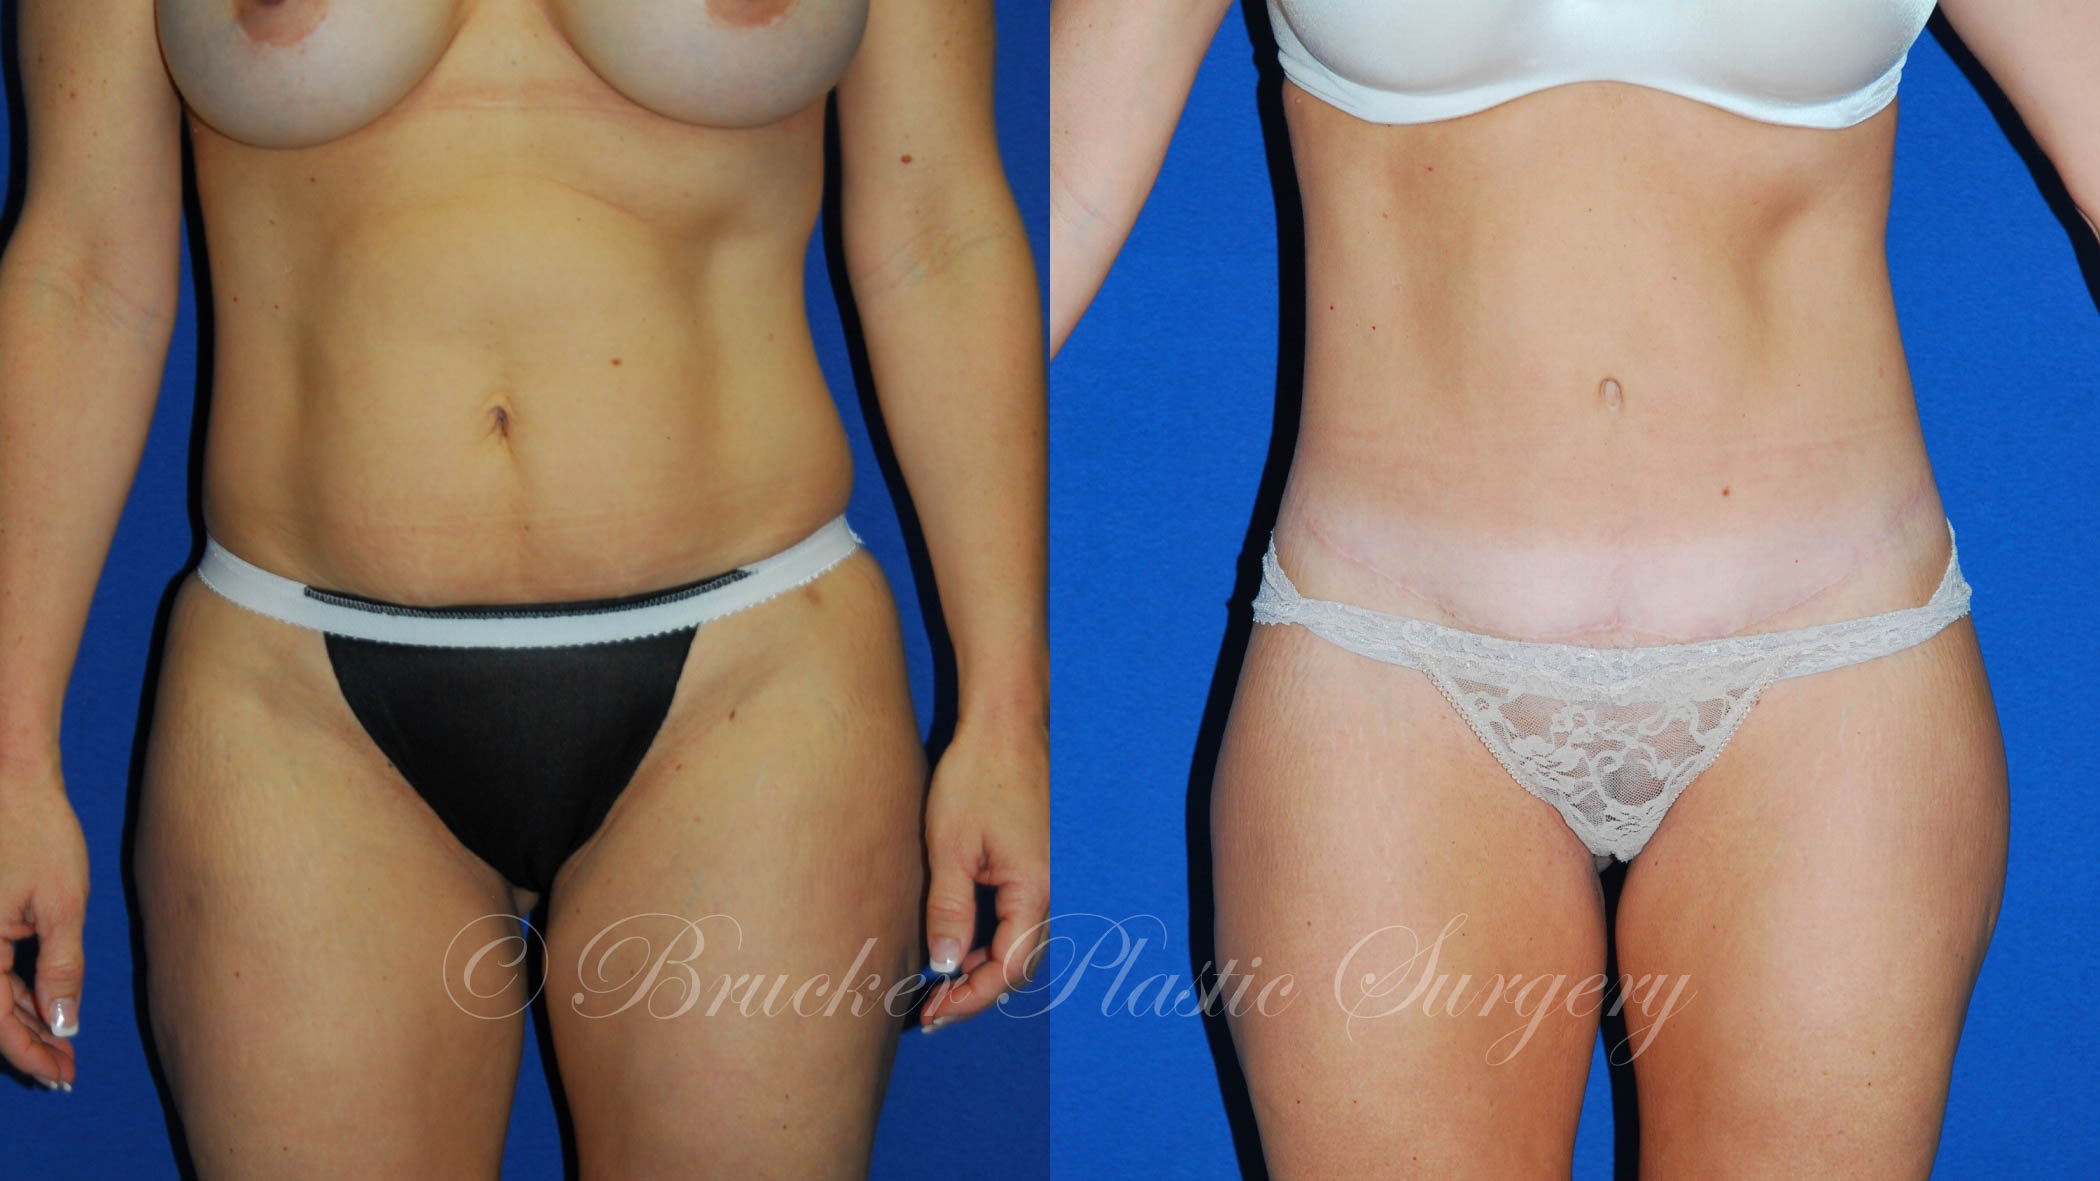 Body Lift Del Mar Patient 2.1